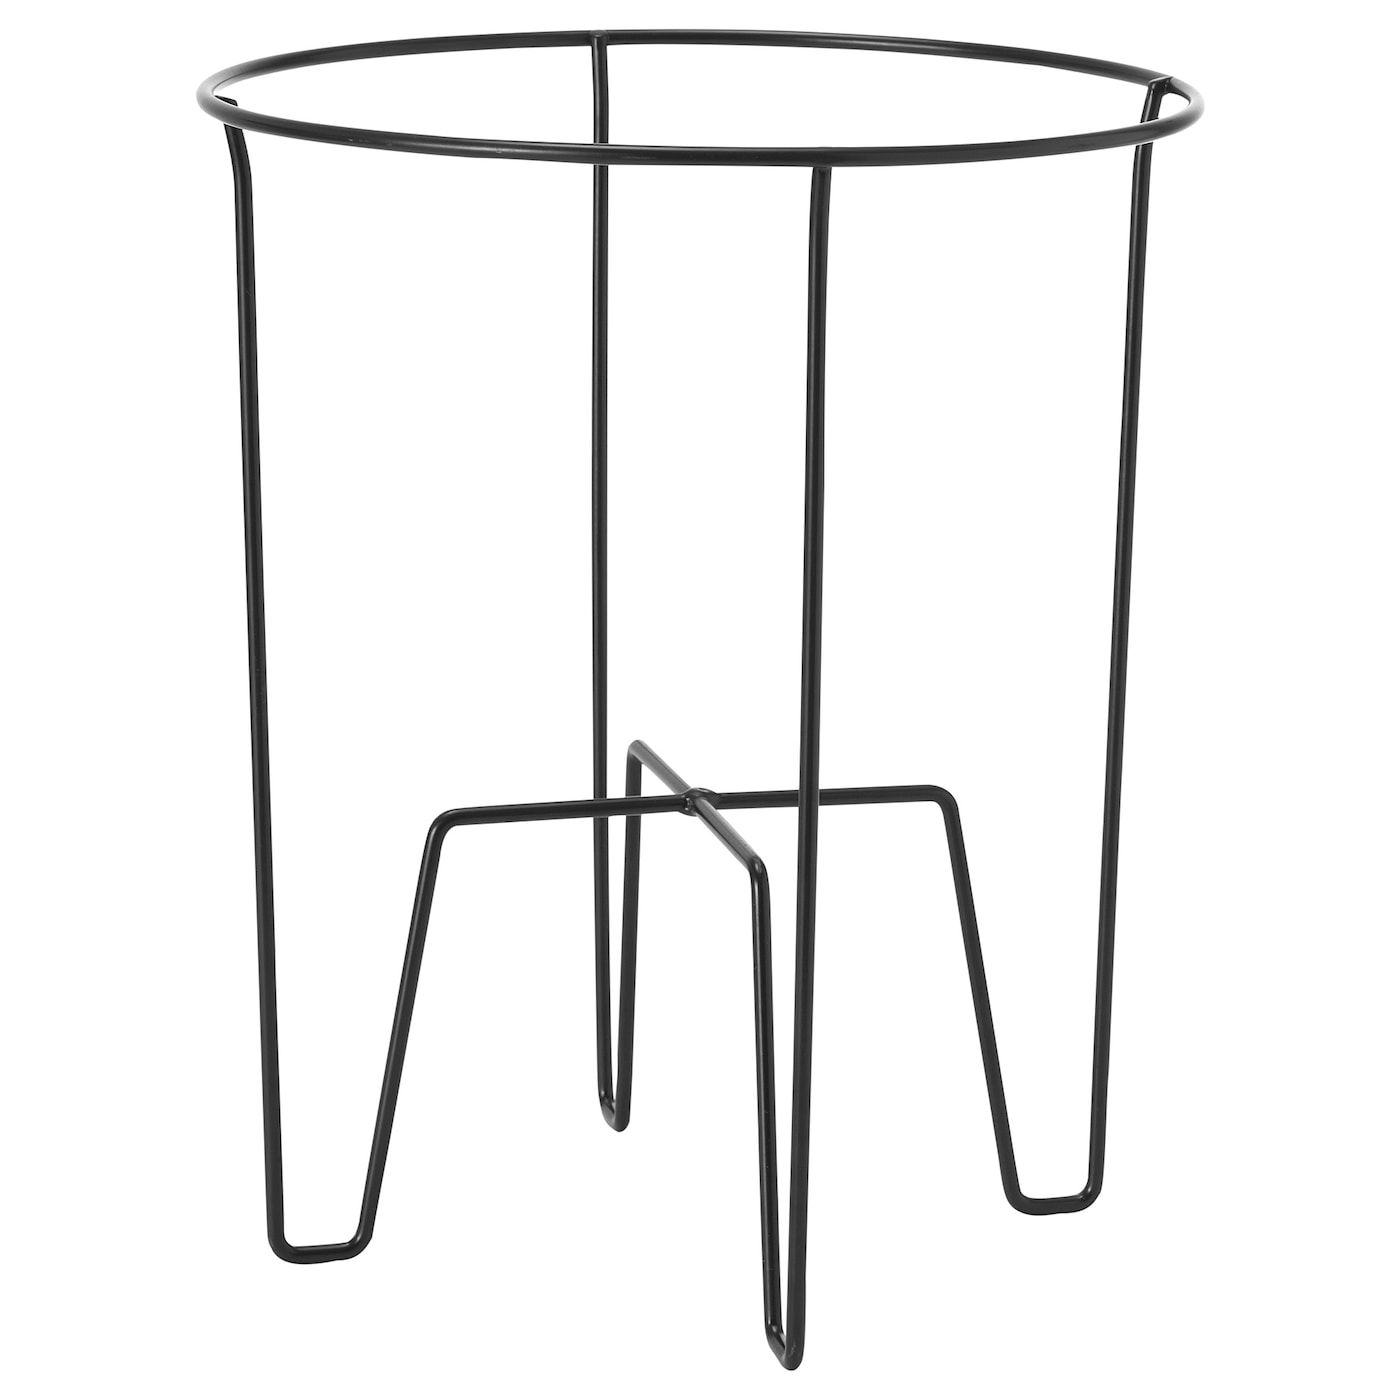 IKEA SVARTPEPPAR plant stand Suitable for both indoor and outdoor use.